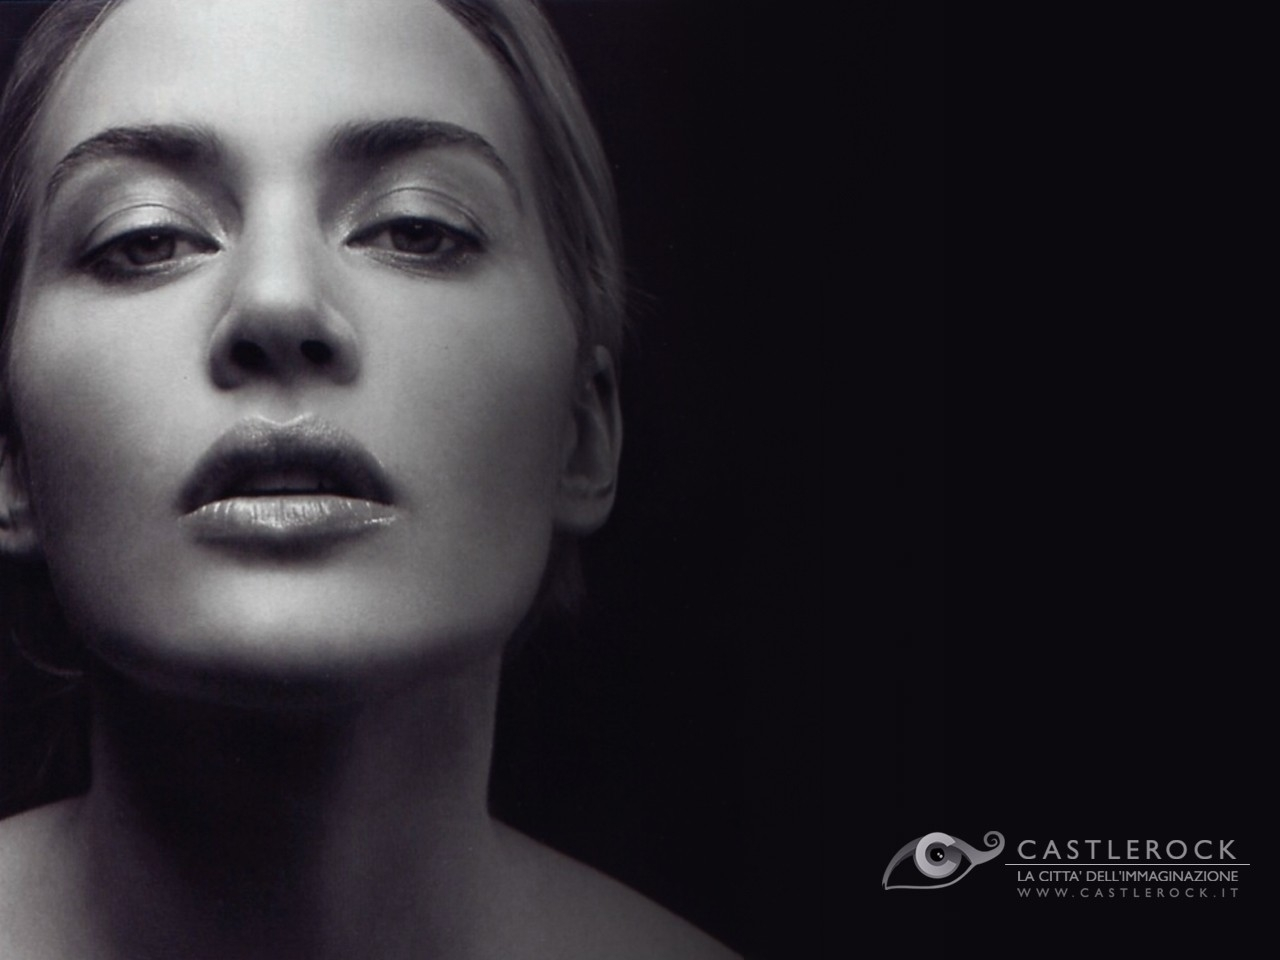 Wallpaper di Kate Winslet